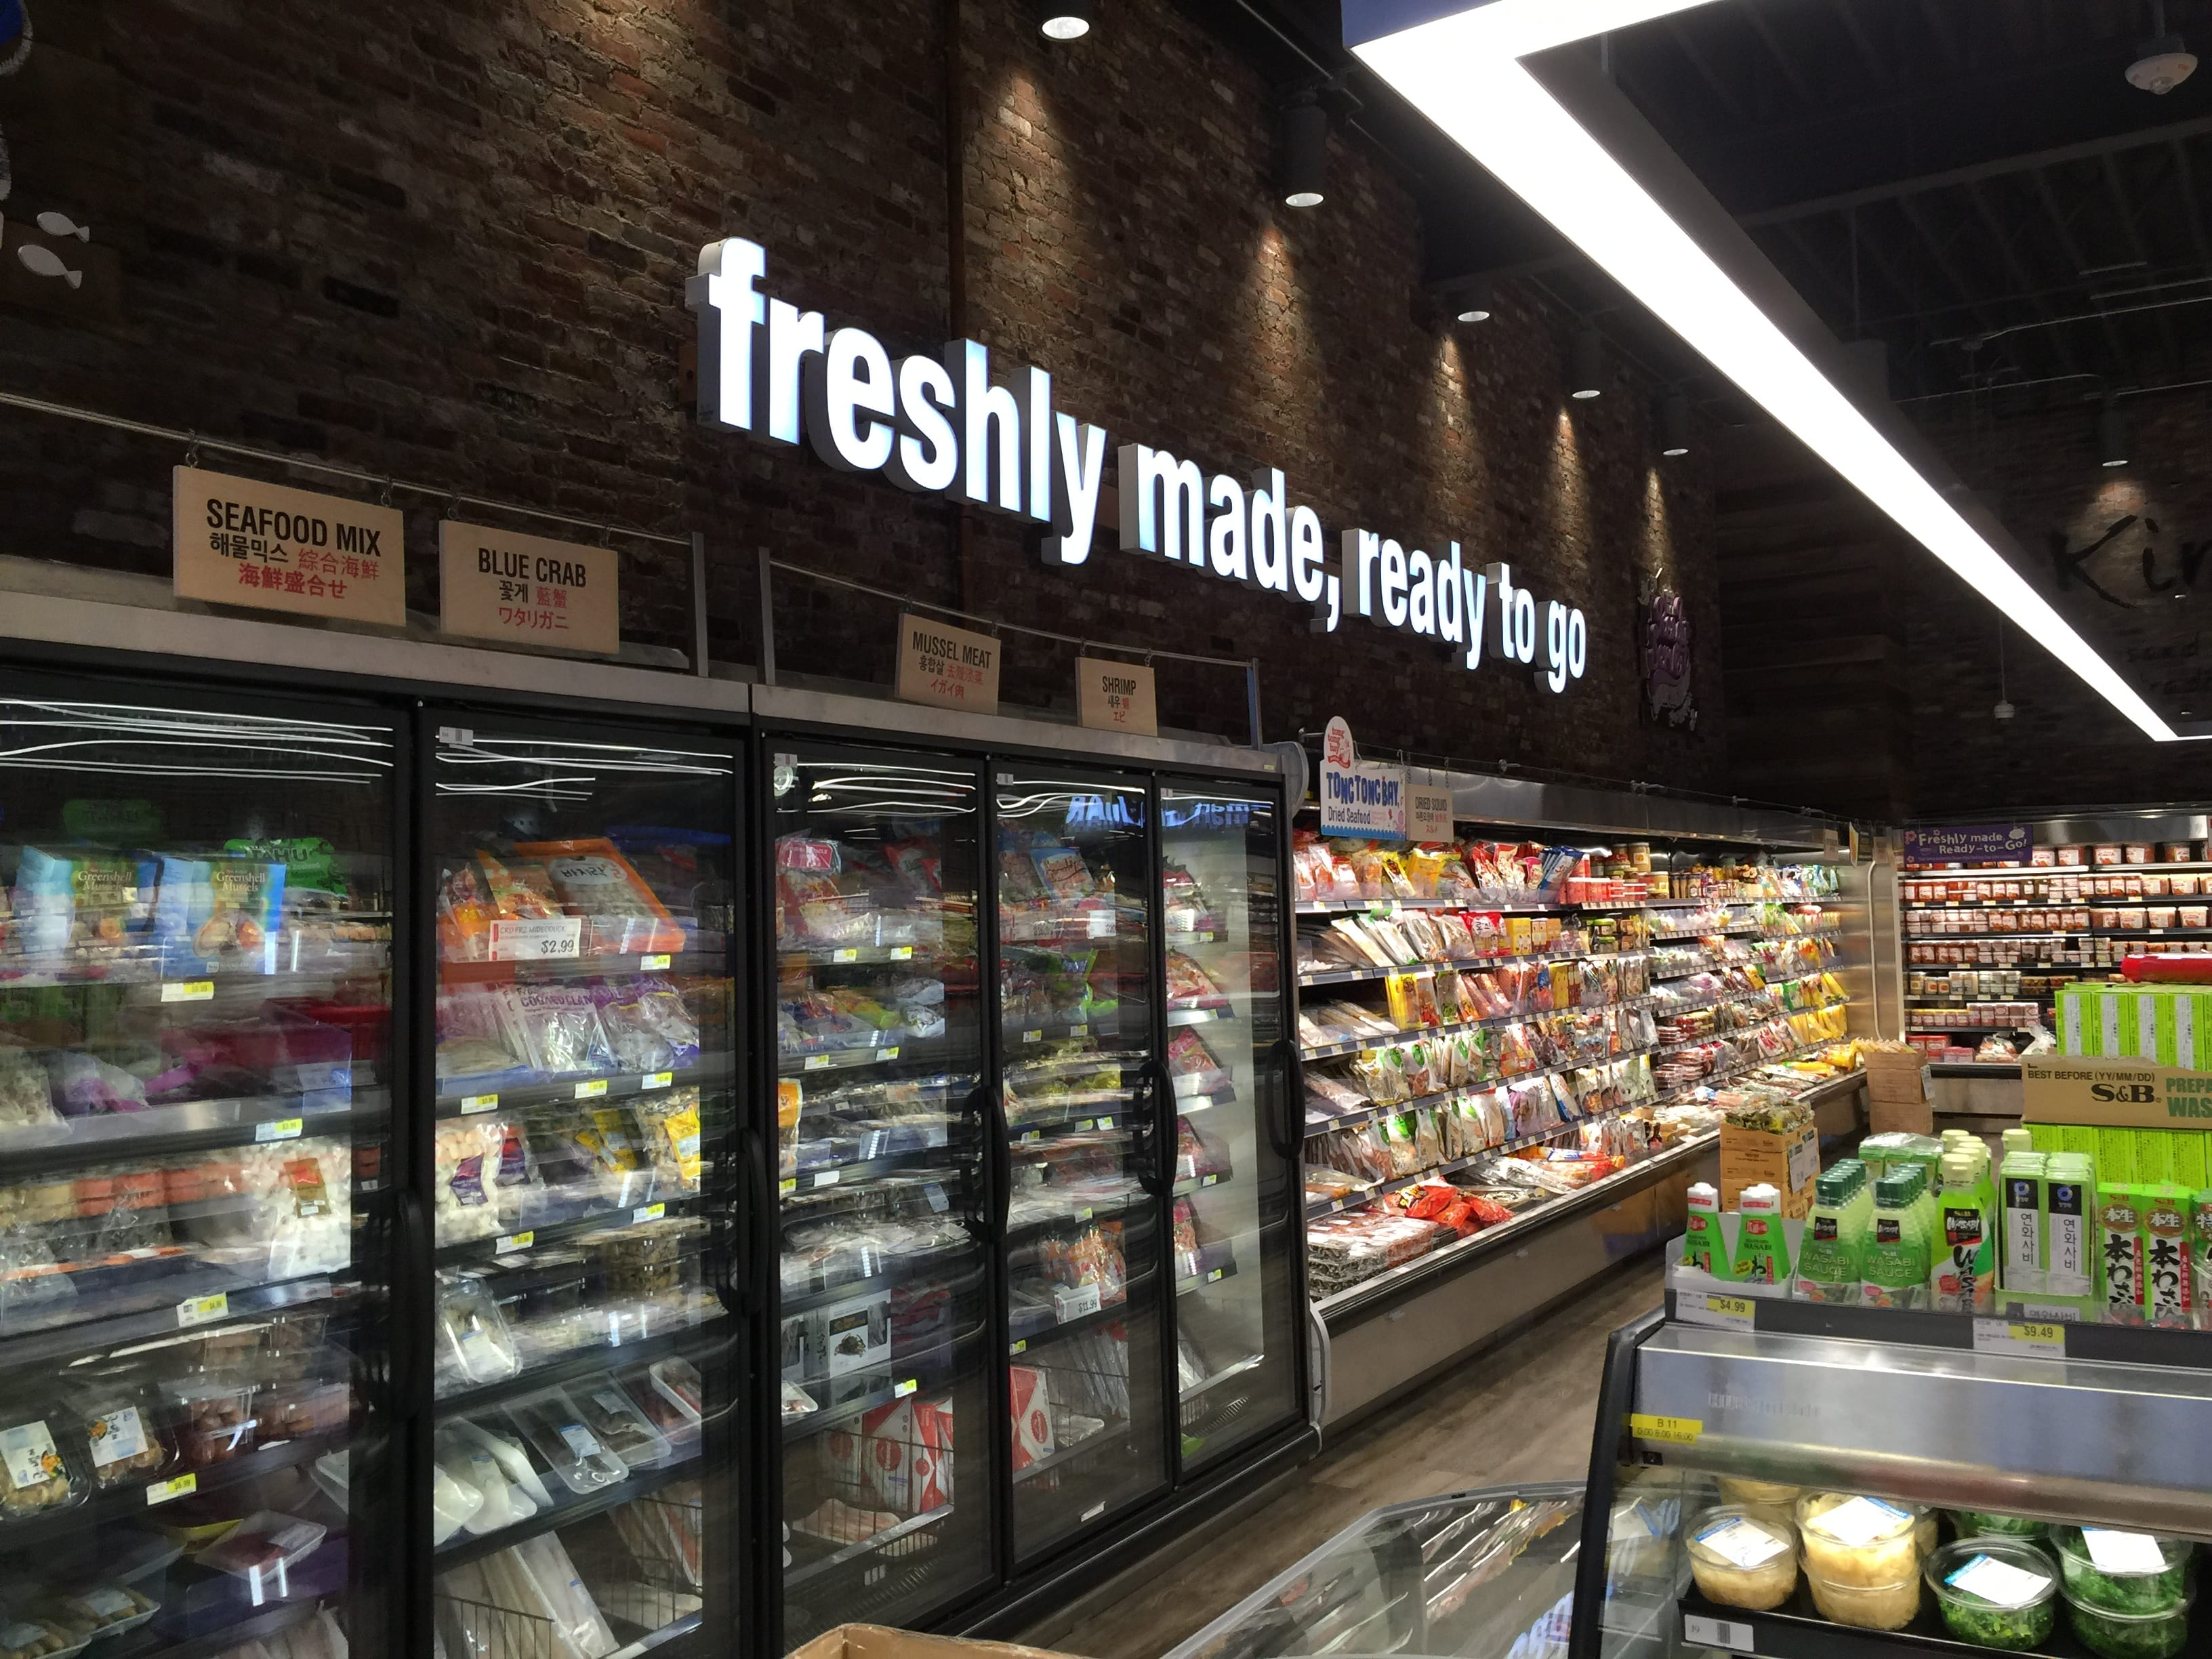 Commercial Refrigeration Services In Massachusetts And Nh